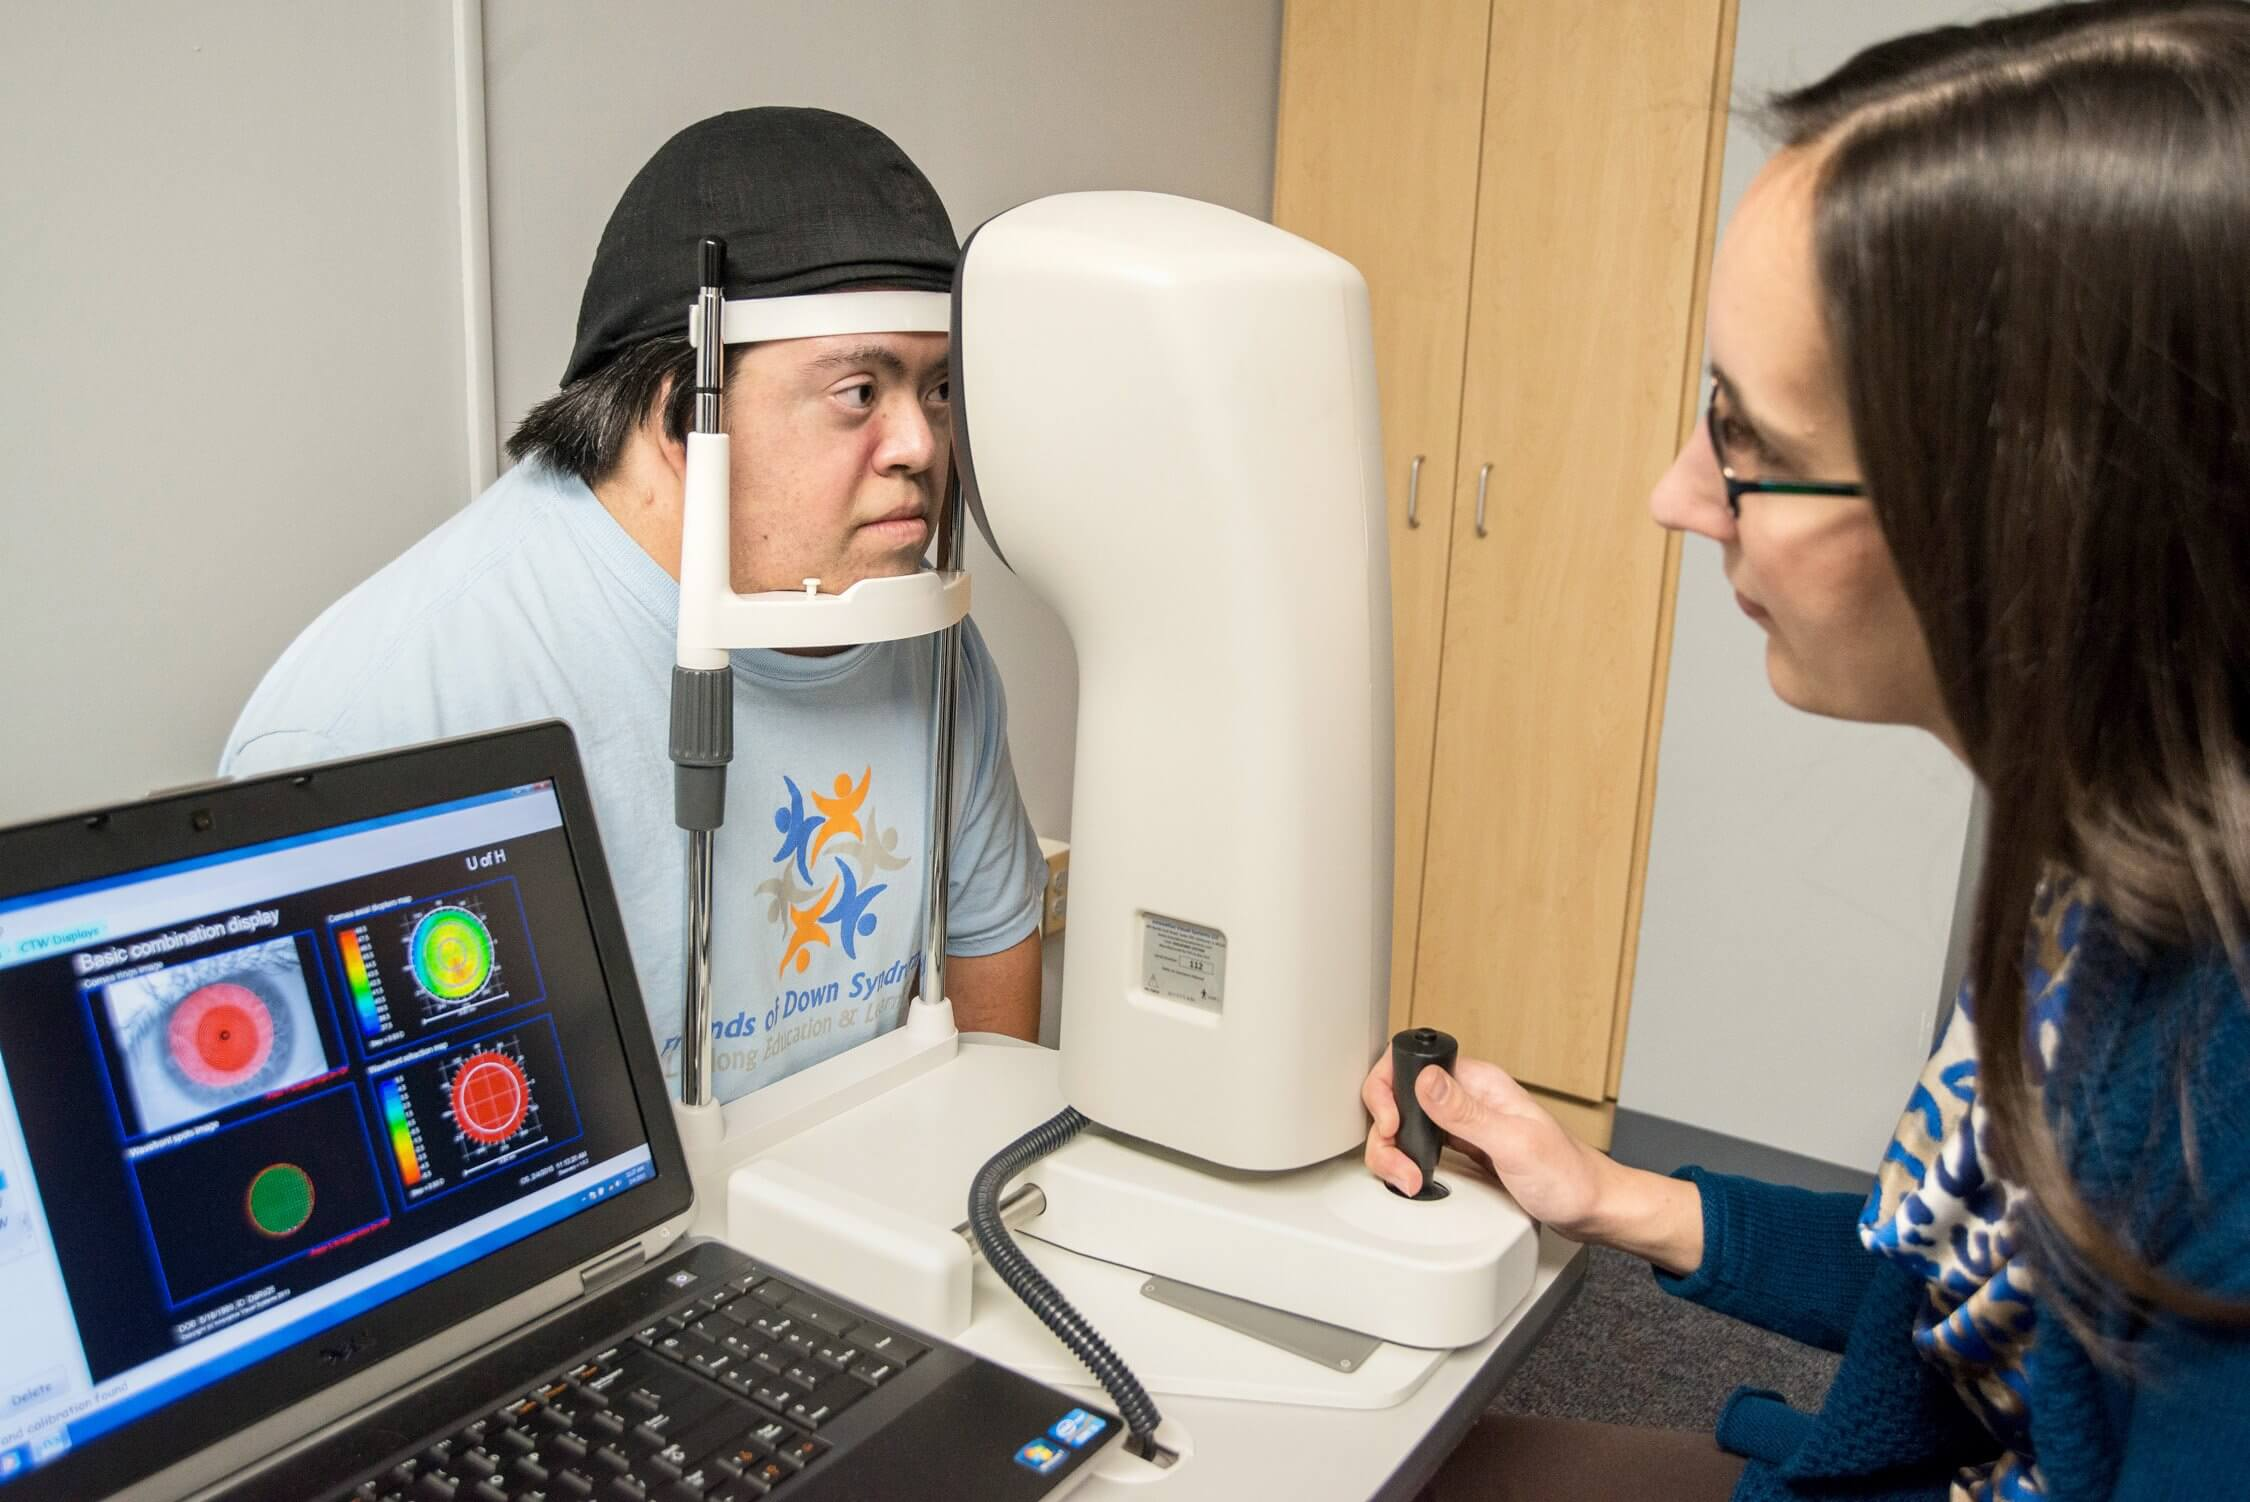 Heather Anderson, an optometrist and assistant professor with the University of Houston, examines a patient's eyes. (Credit: David Gee)